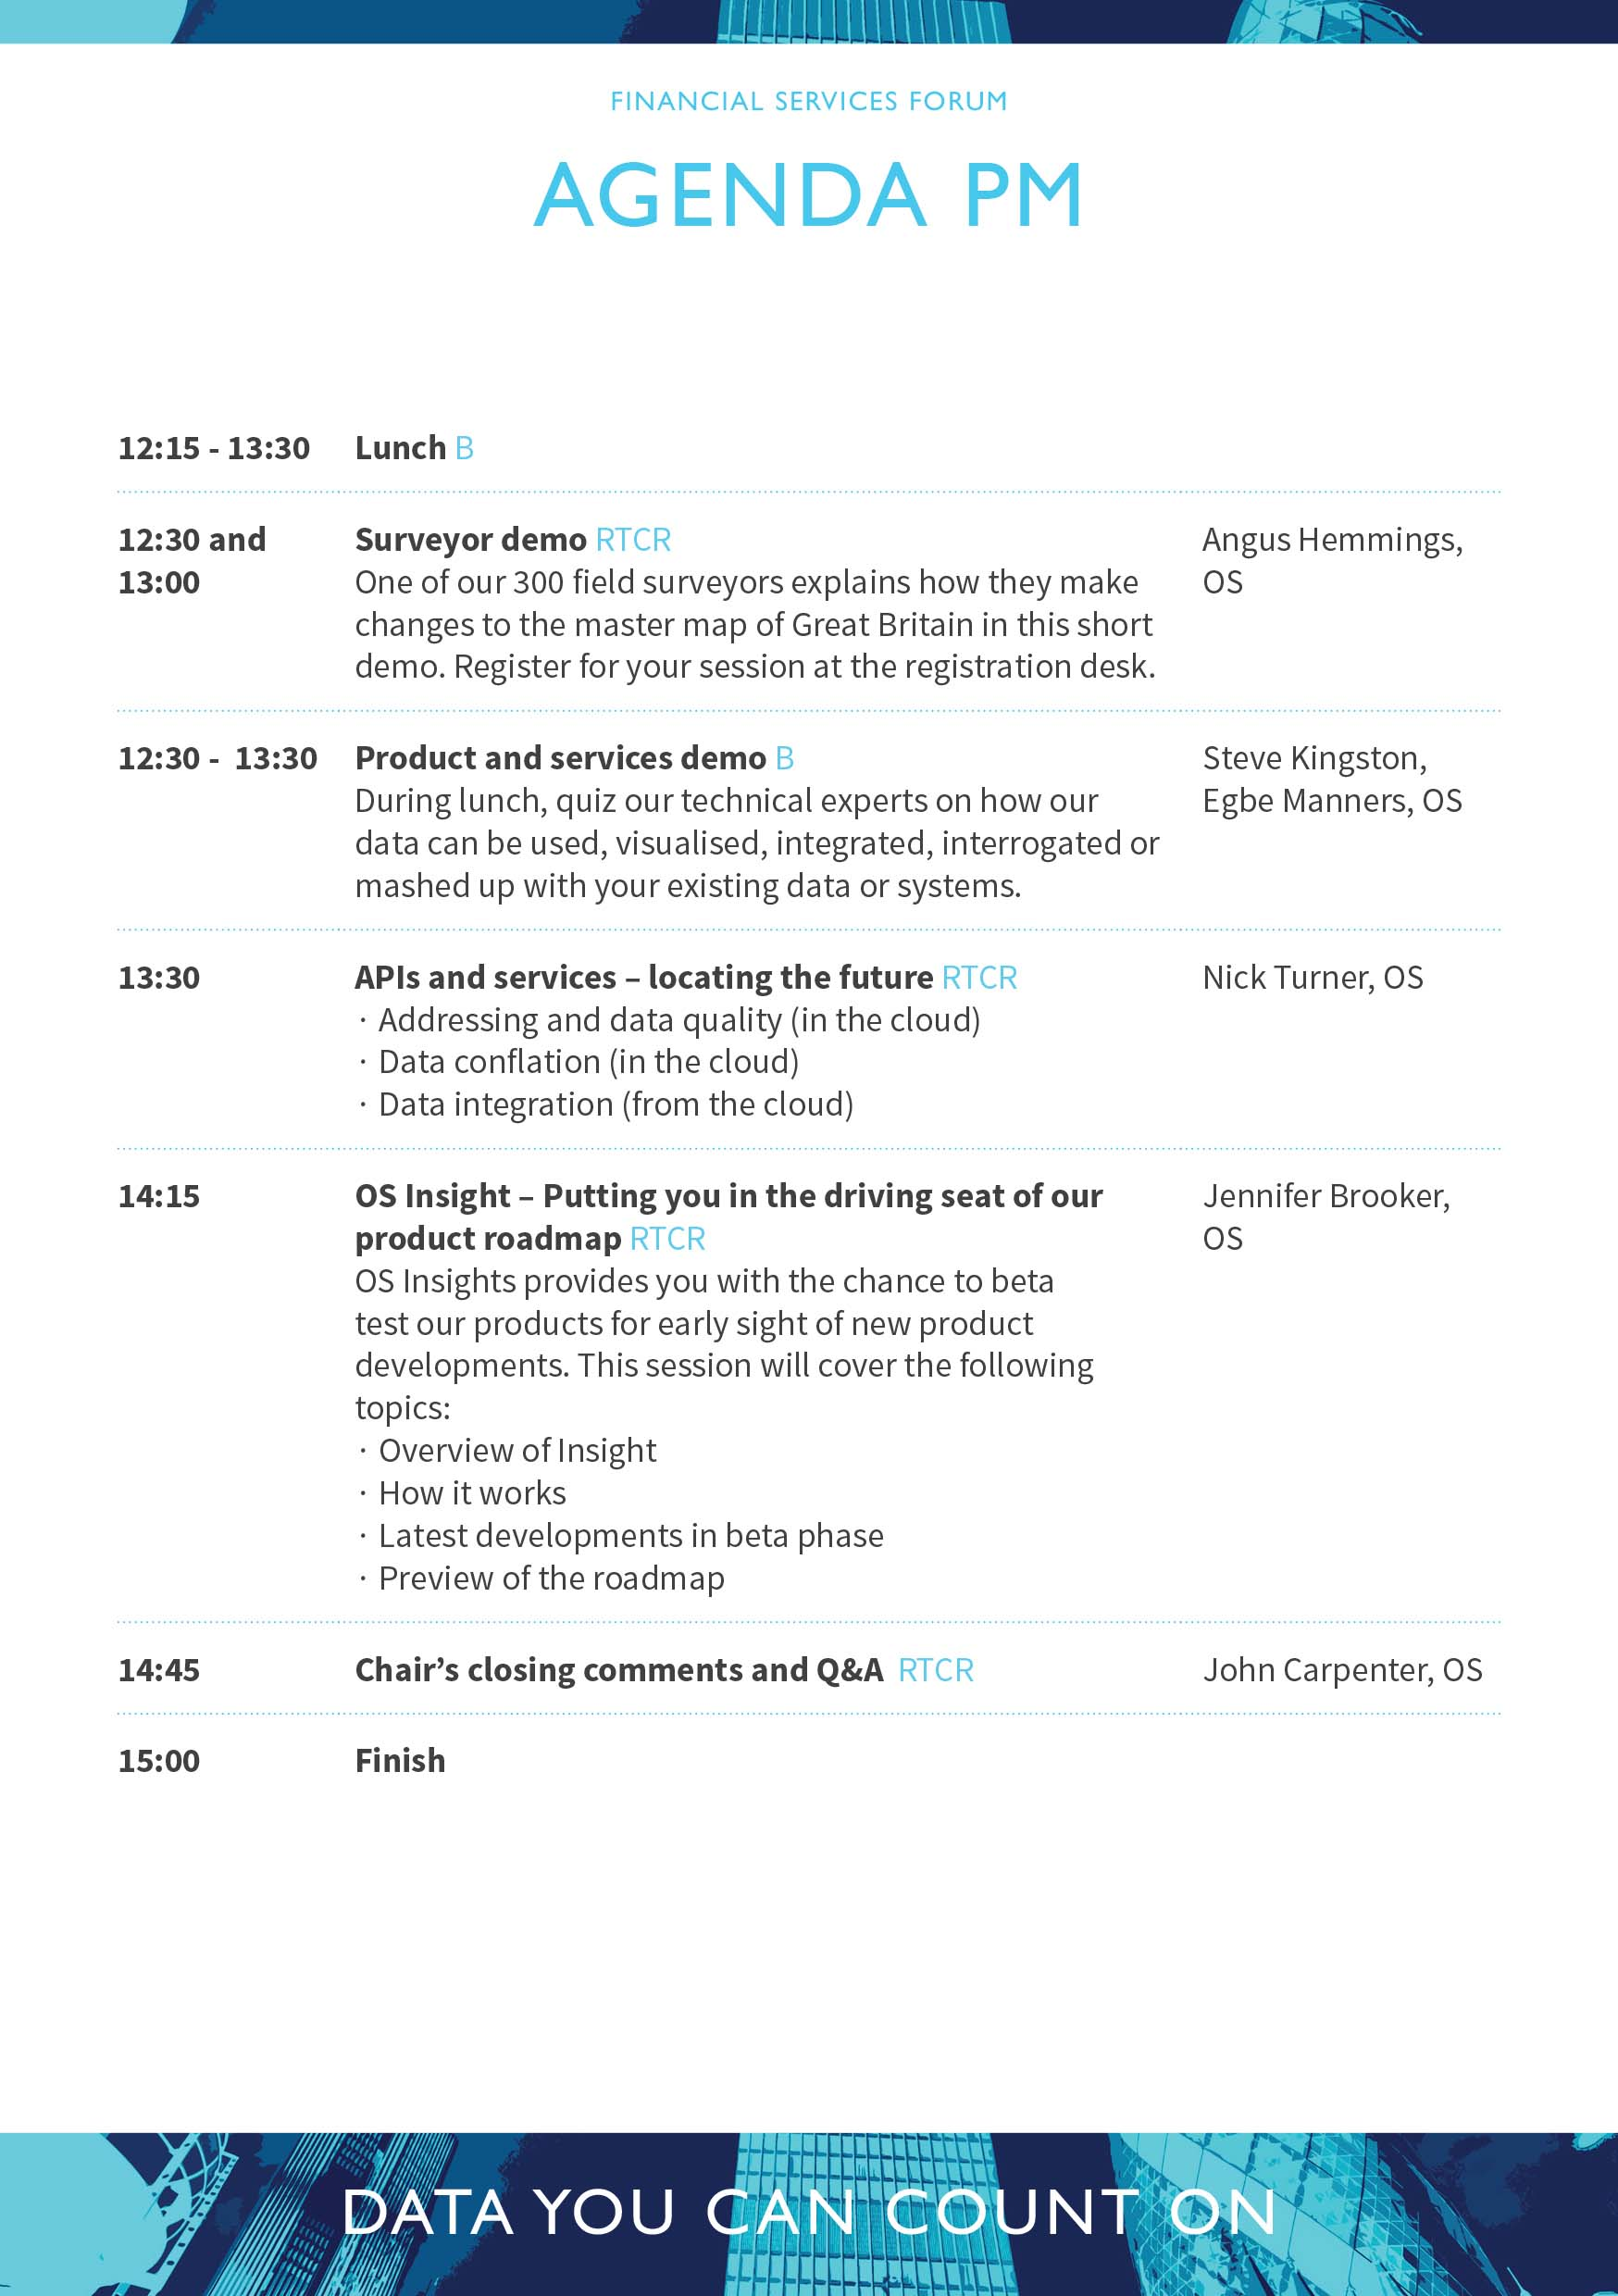 Financial Services Forum Afternoon Agenda